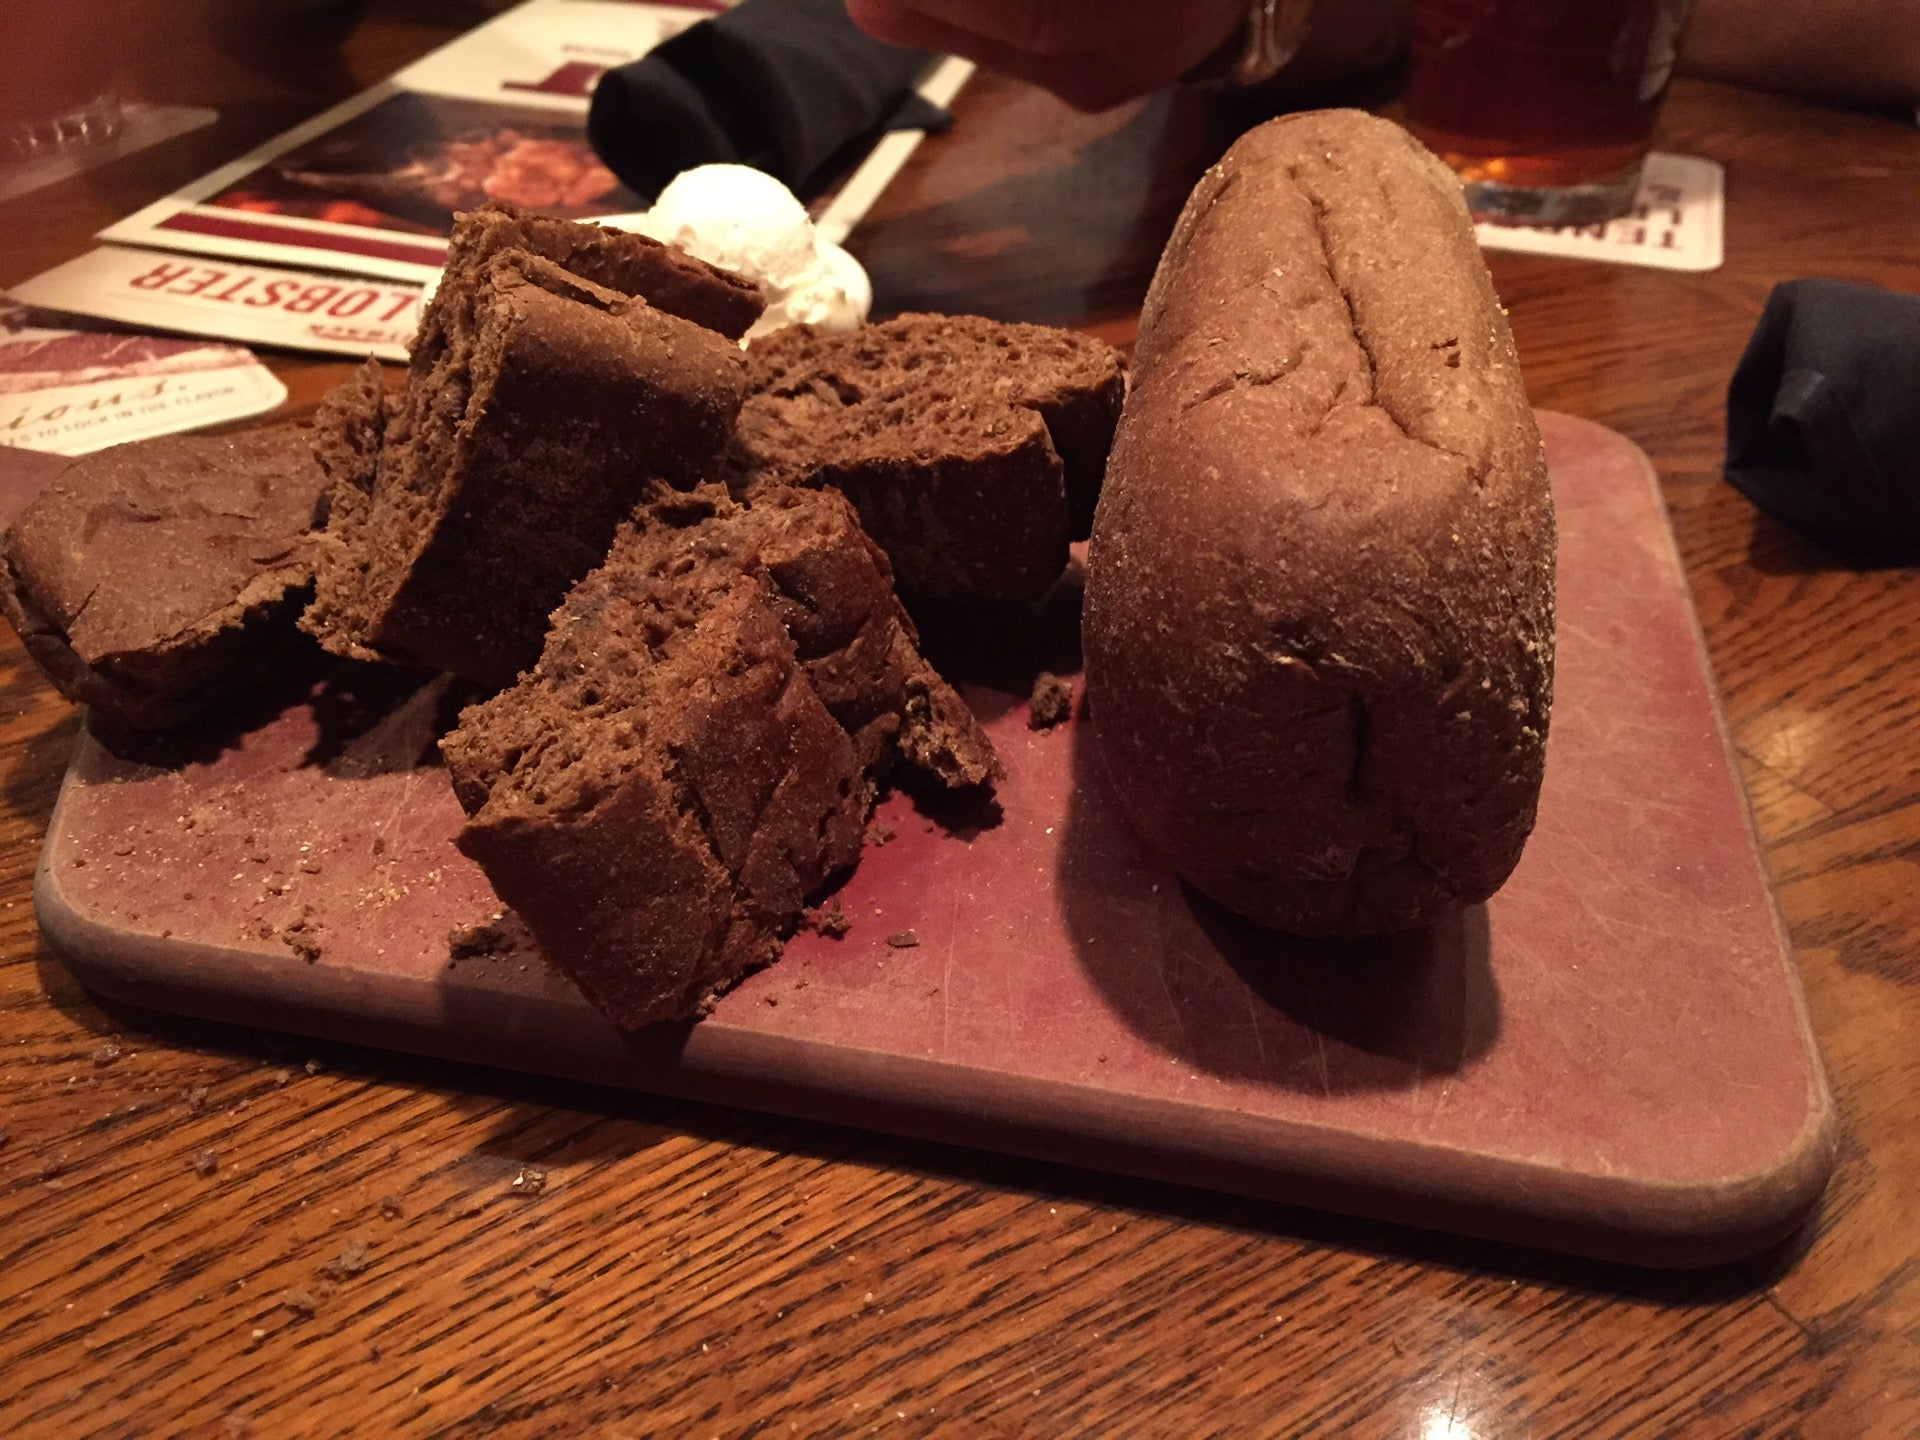 OUTBACK STEAKHOUSE,Bloomin' Onion,Outback,Restaurant,Steakhouse,zagat-rated